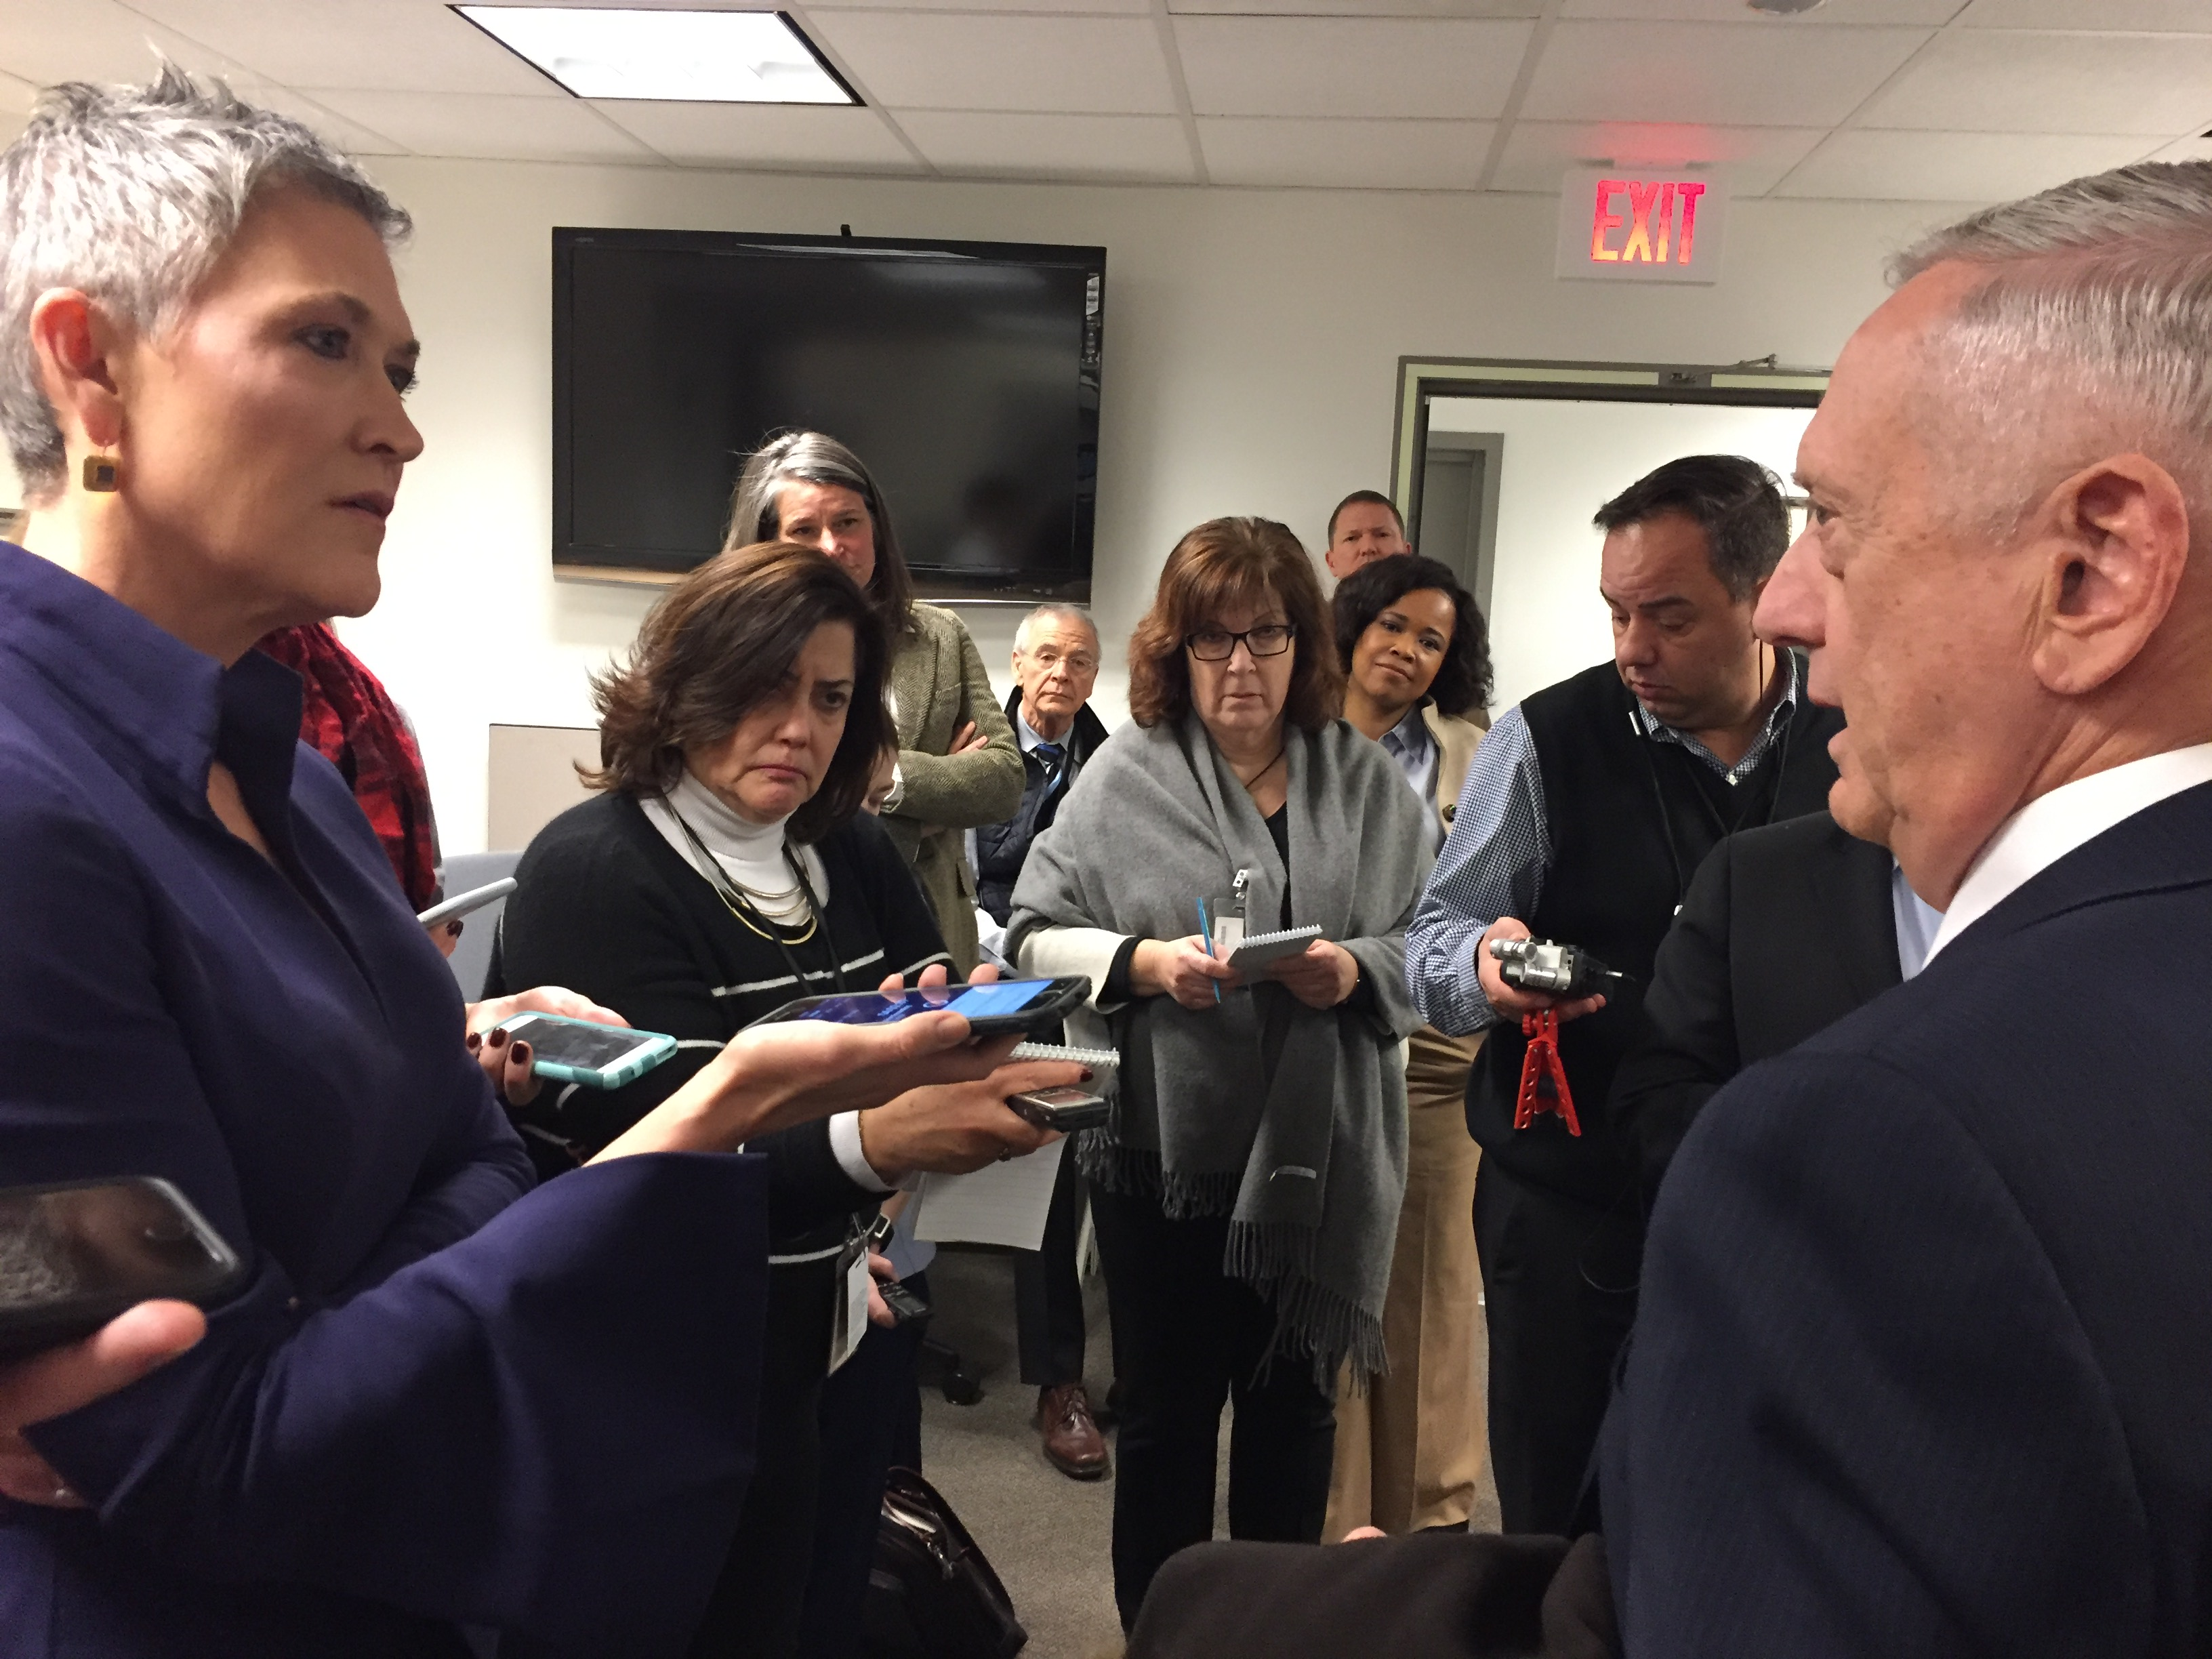 Defense Secretary James N. Mattis speaks with reporters at the Pentagon during an impromptu visit to the press area, Jan. 4, 2018. DoD photo by Jim Garamone